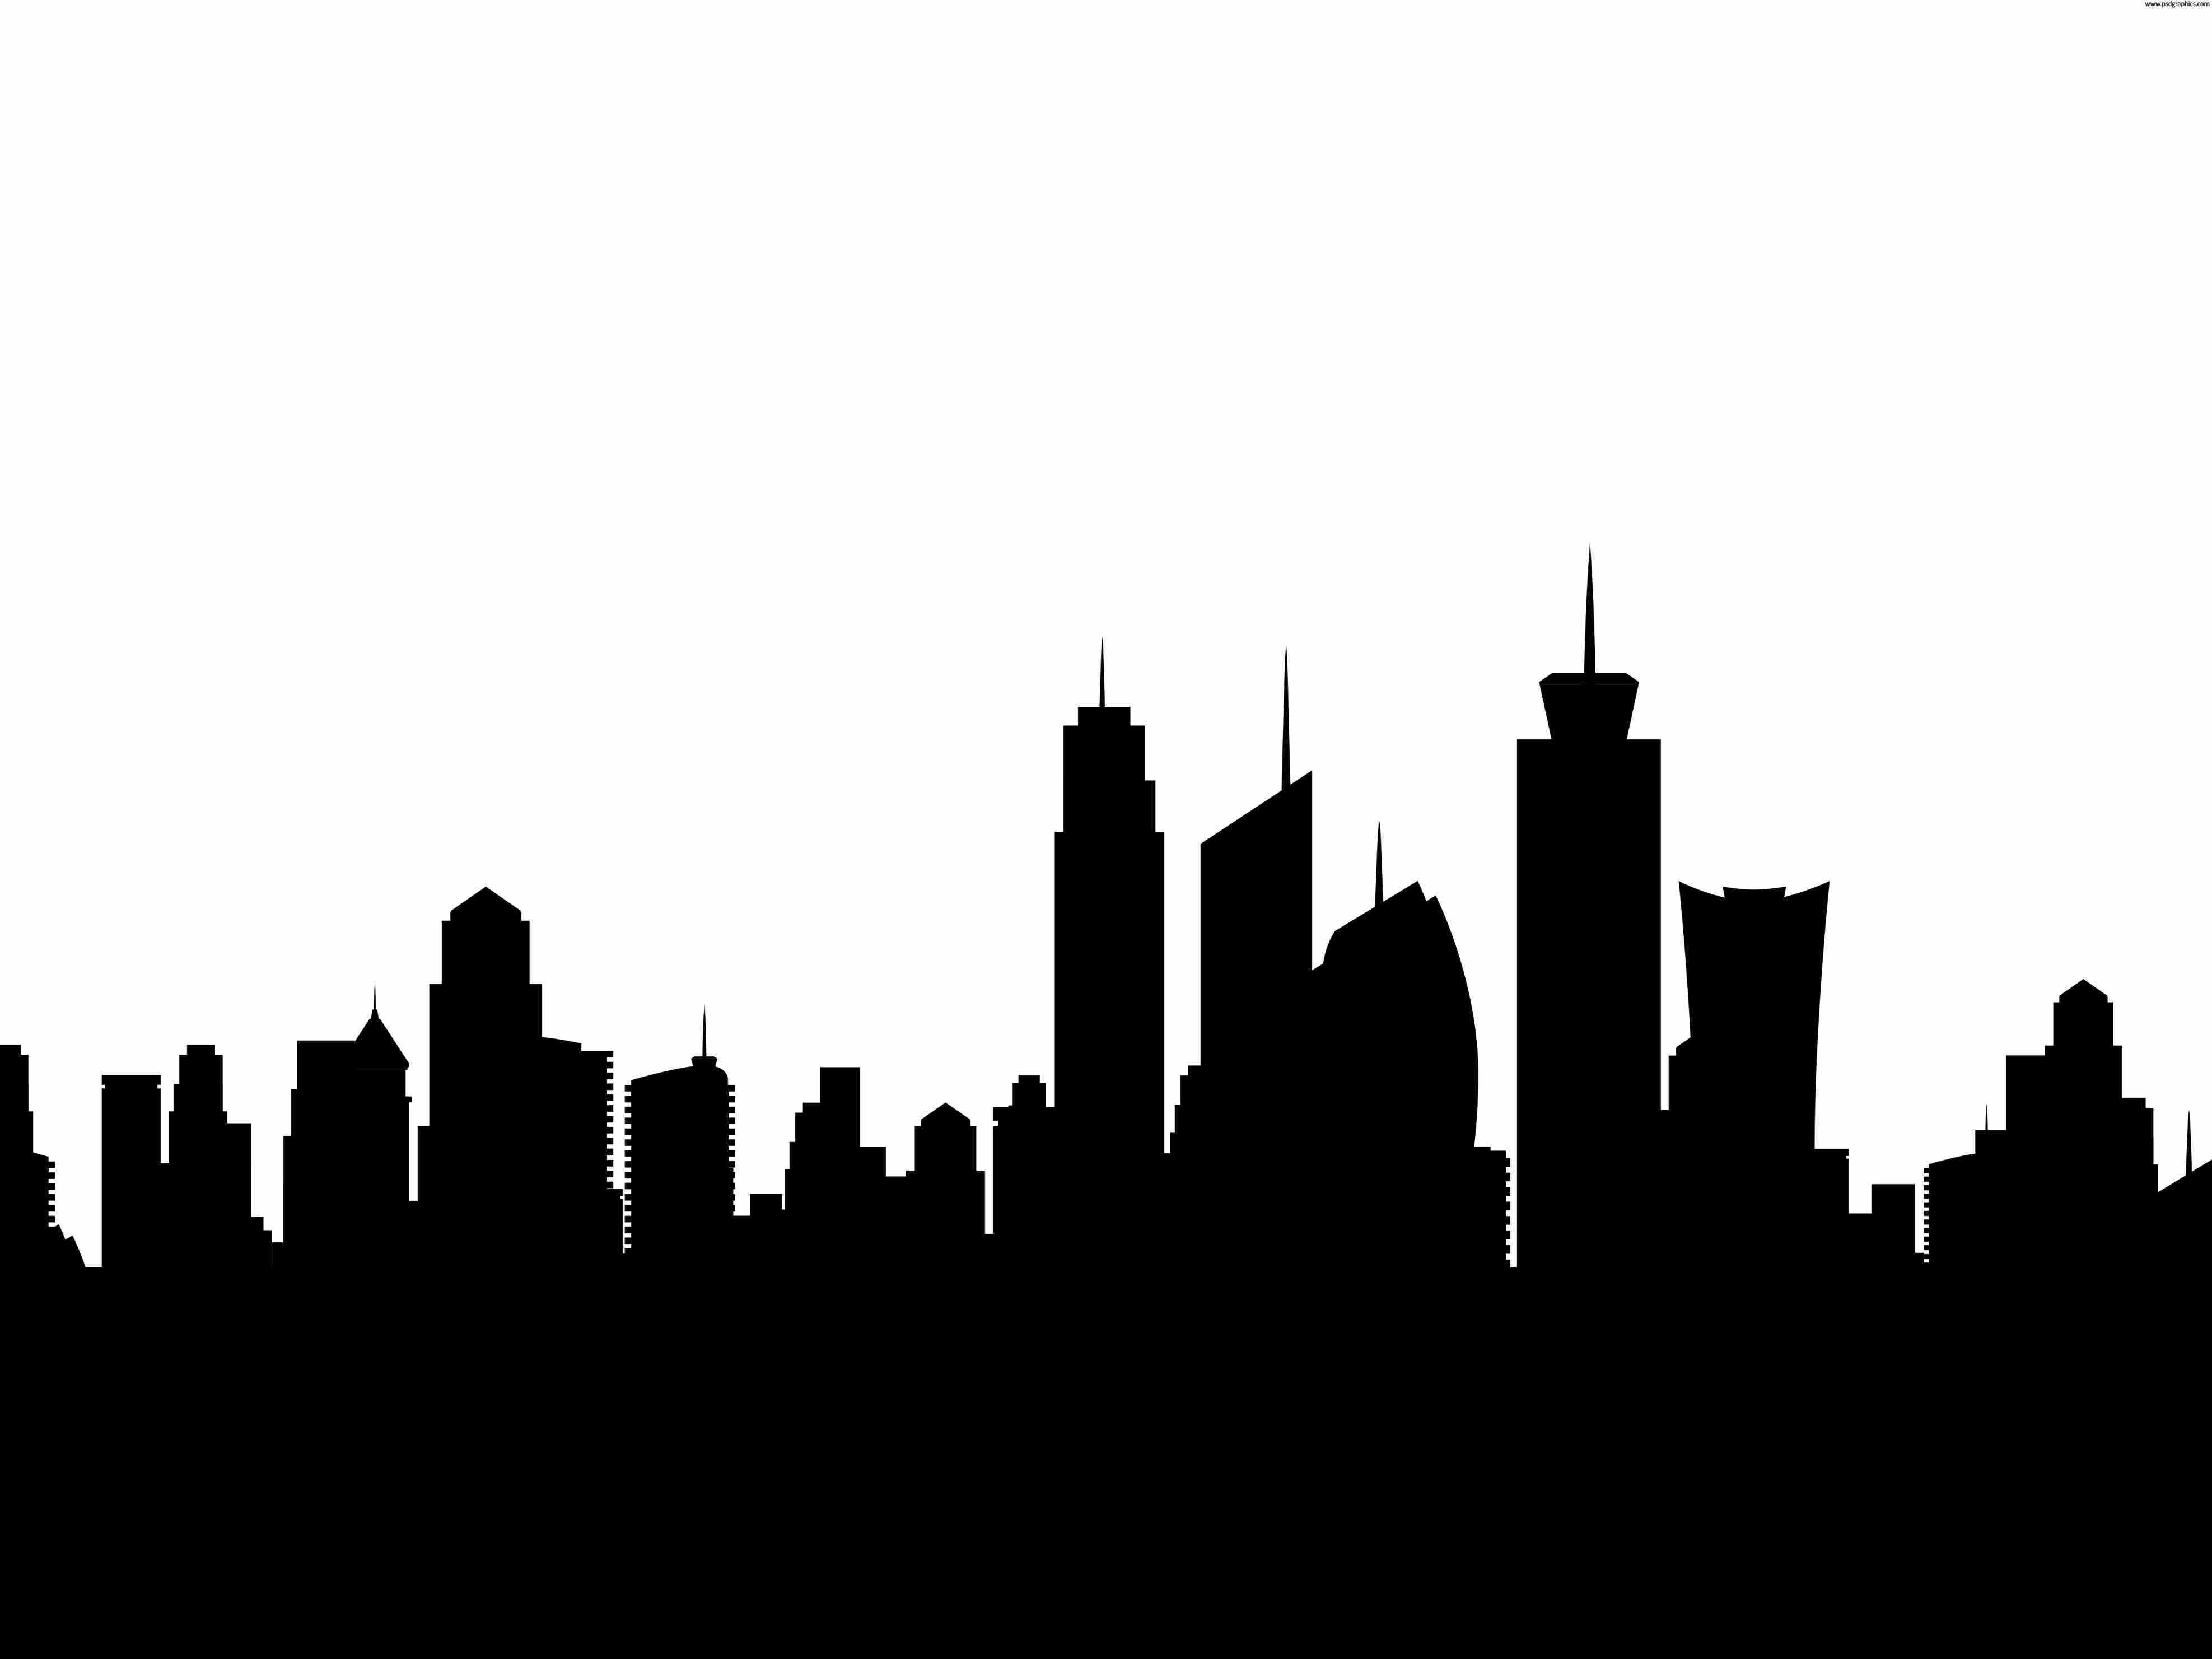 nyc skyline silhouette clip art at getdrawings com free for rh getdrawings com nyc skyline black and white clipart new york city skyline clipart free